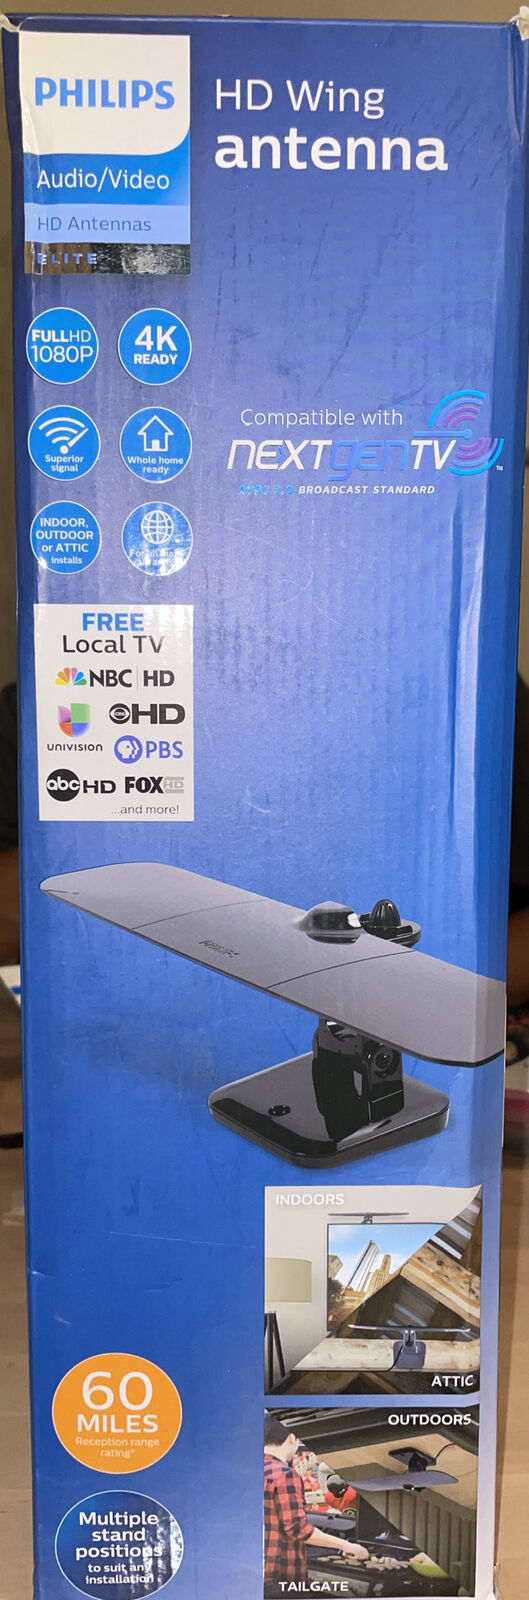 Philips Wing HDTV Antenna Indoor Attic Outdoor Mountable Full HD 1080P - 60 mile. Available Now for 22.00